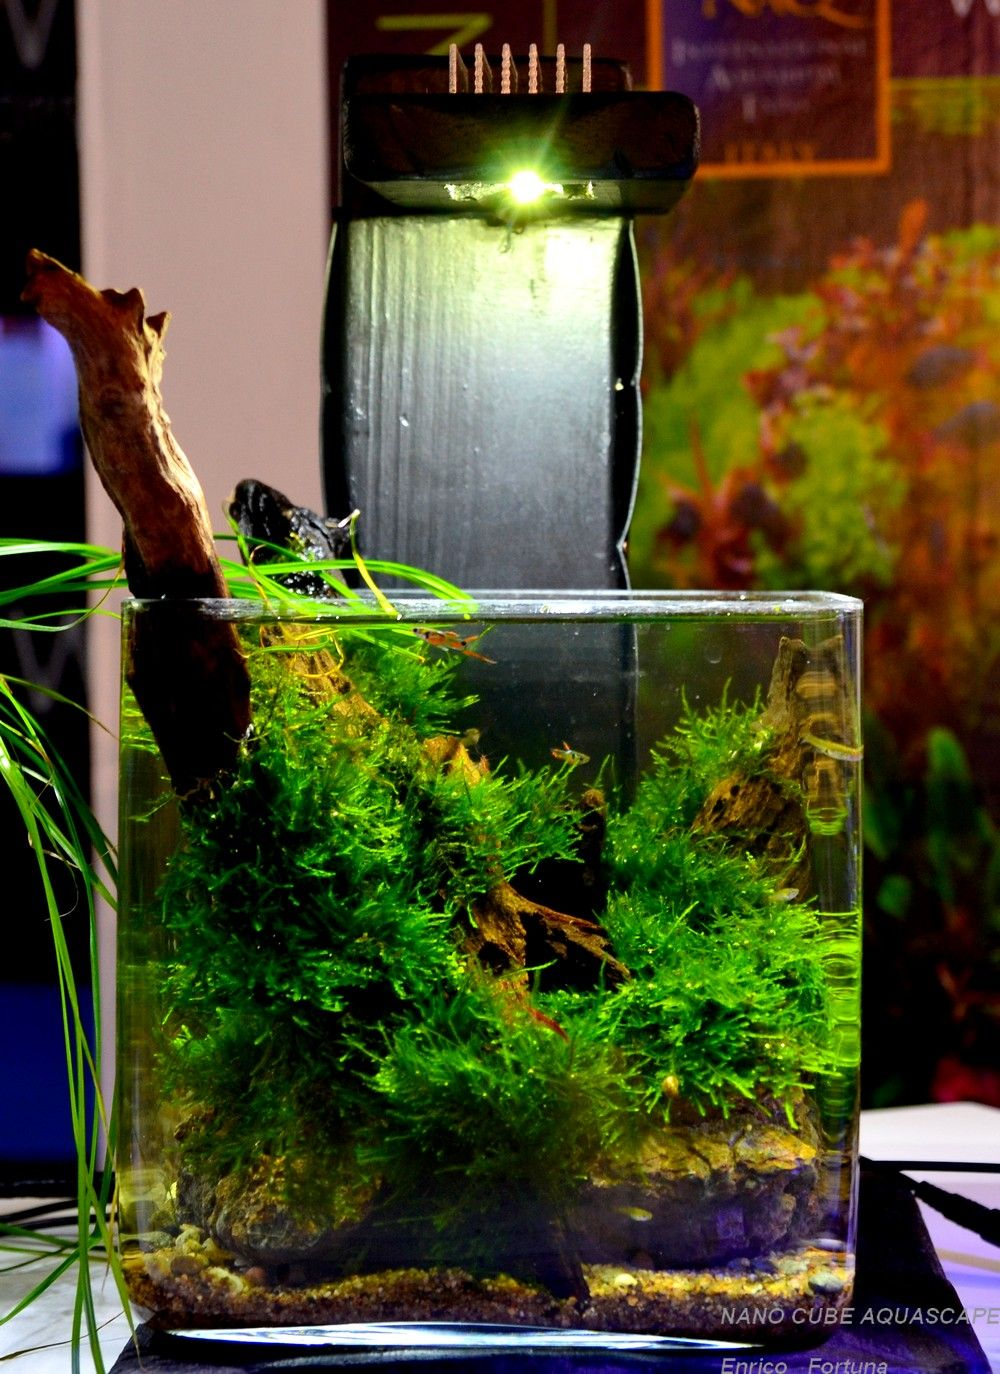 Nano cube aquascaping nature aquarium aquascaping by for Aquarium nano cube